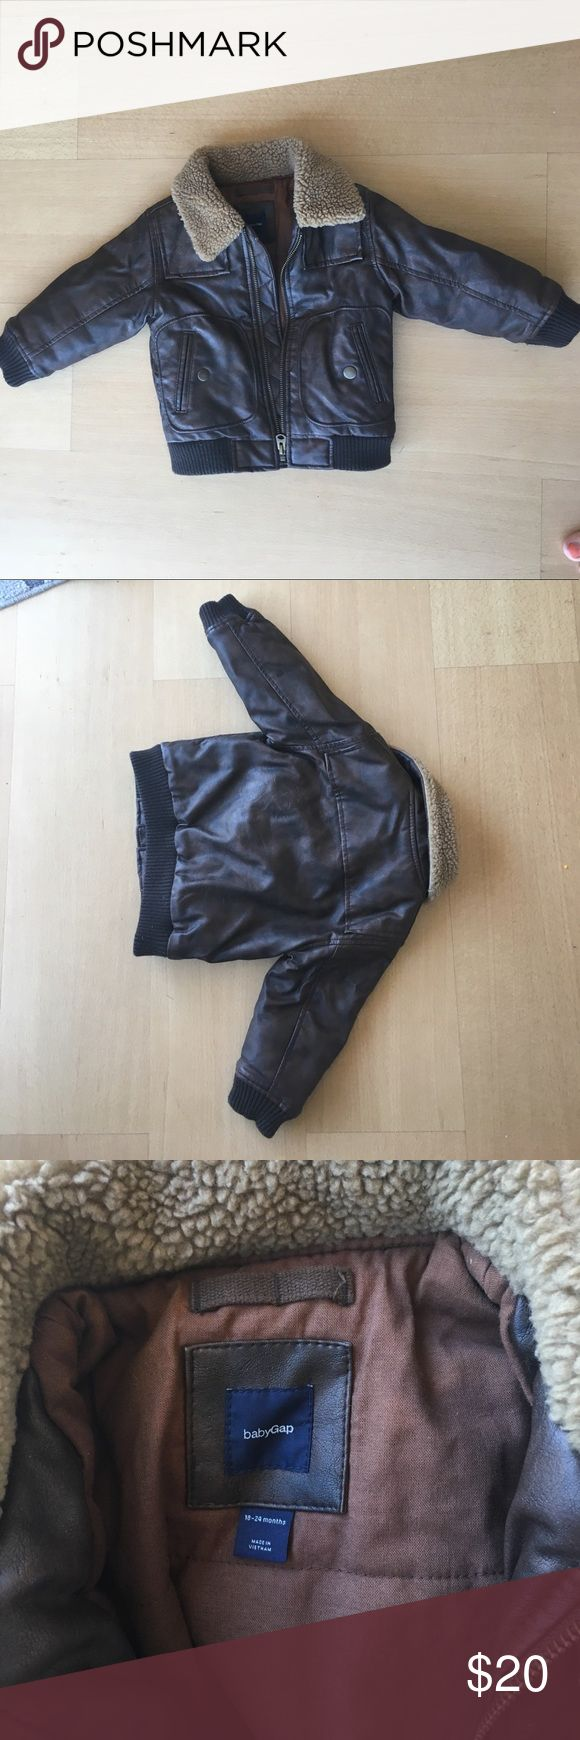 Faux leather shearling baby bomber jacket Gap 18-24 months, rarely worn and runs large GAP Jackets & Coats